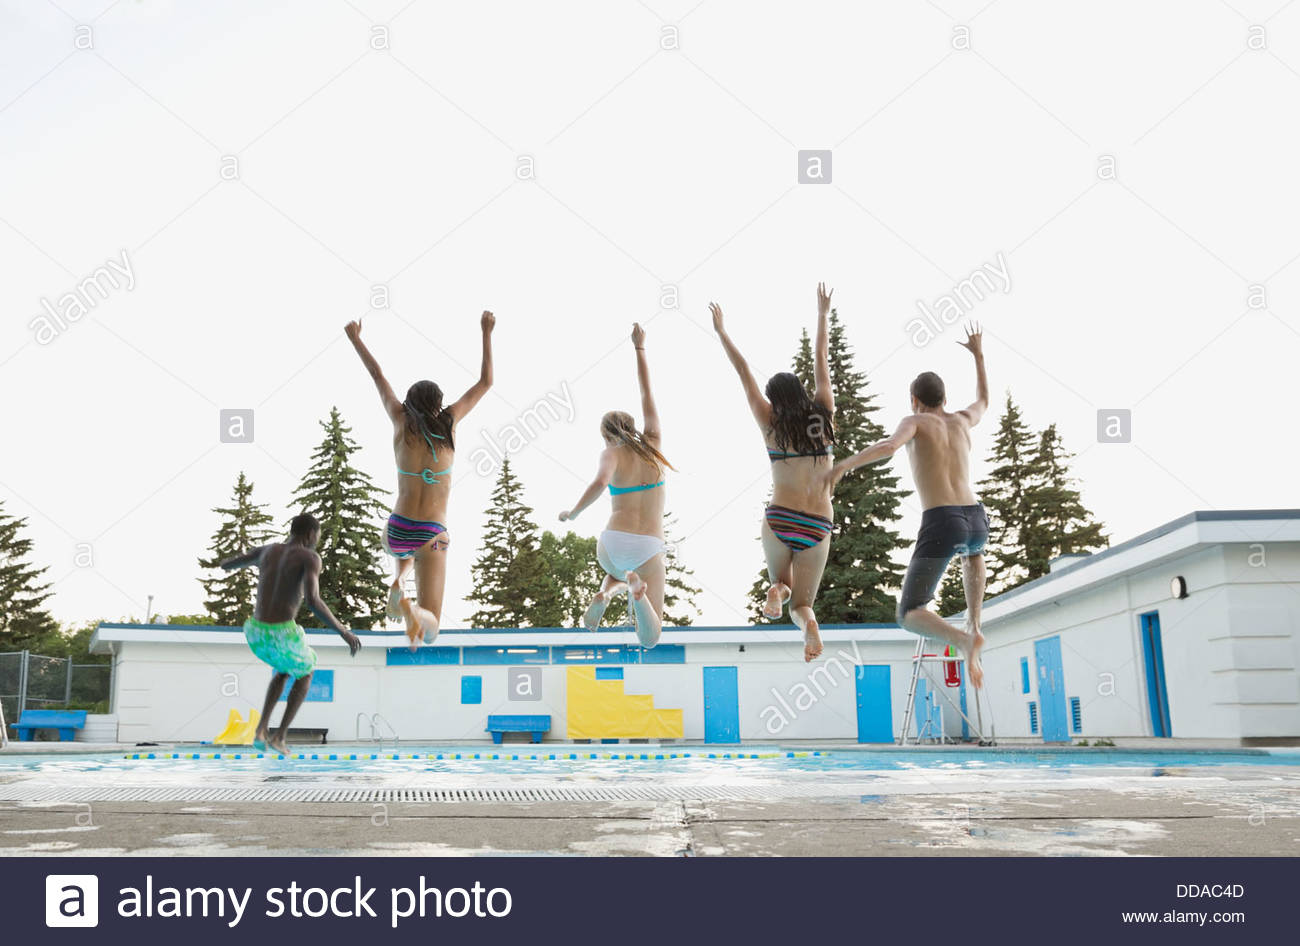 Groupe d'adolescents jumping into swimming pool Banque D'Images